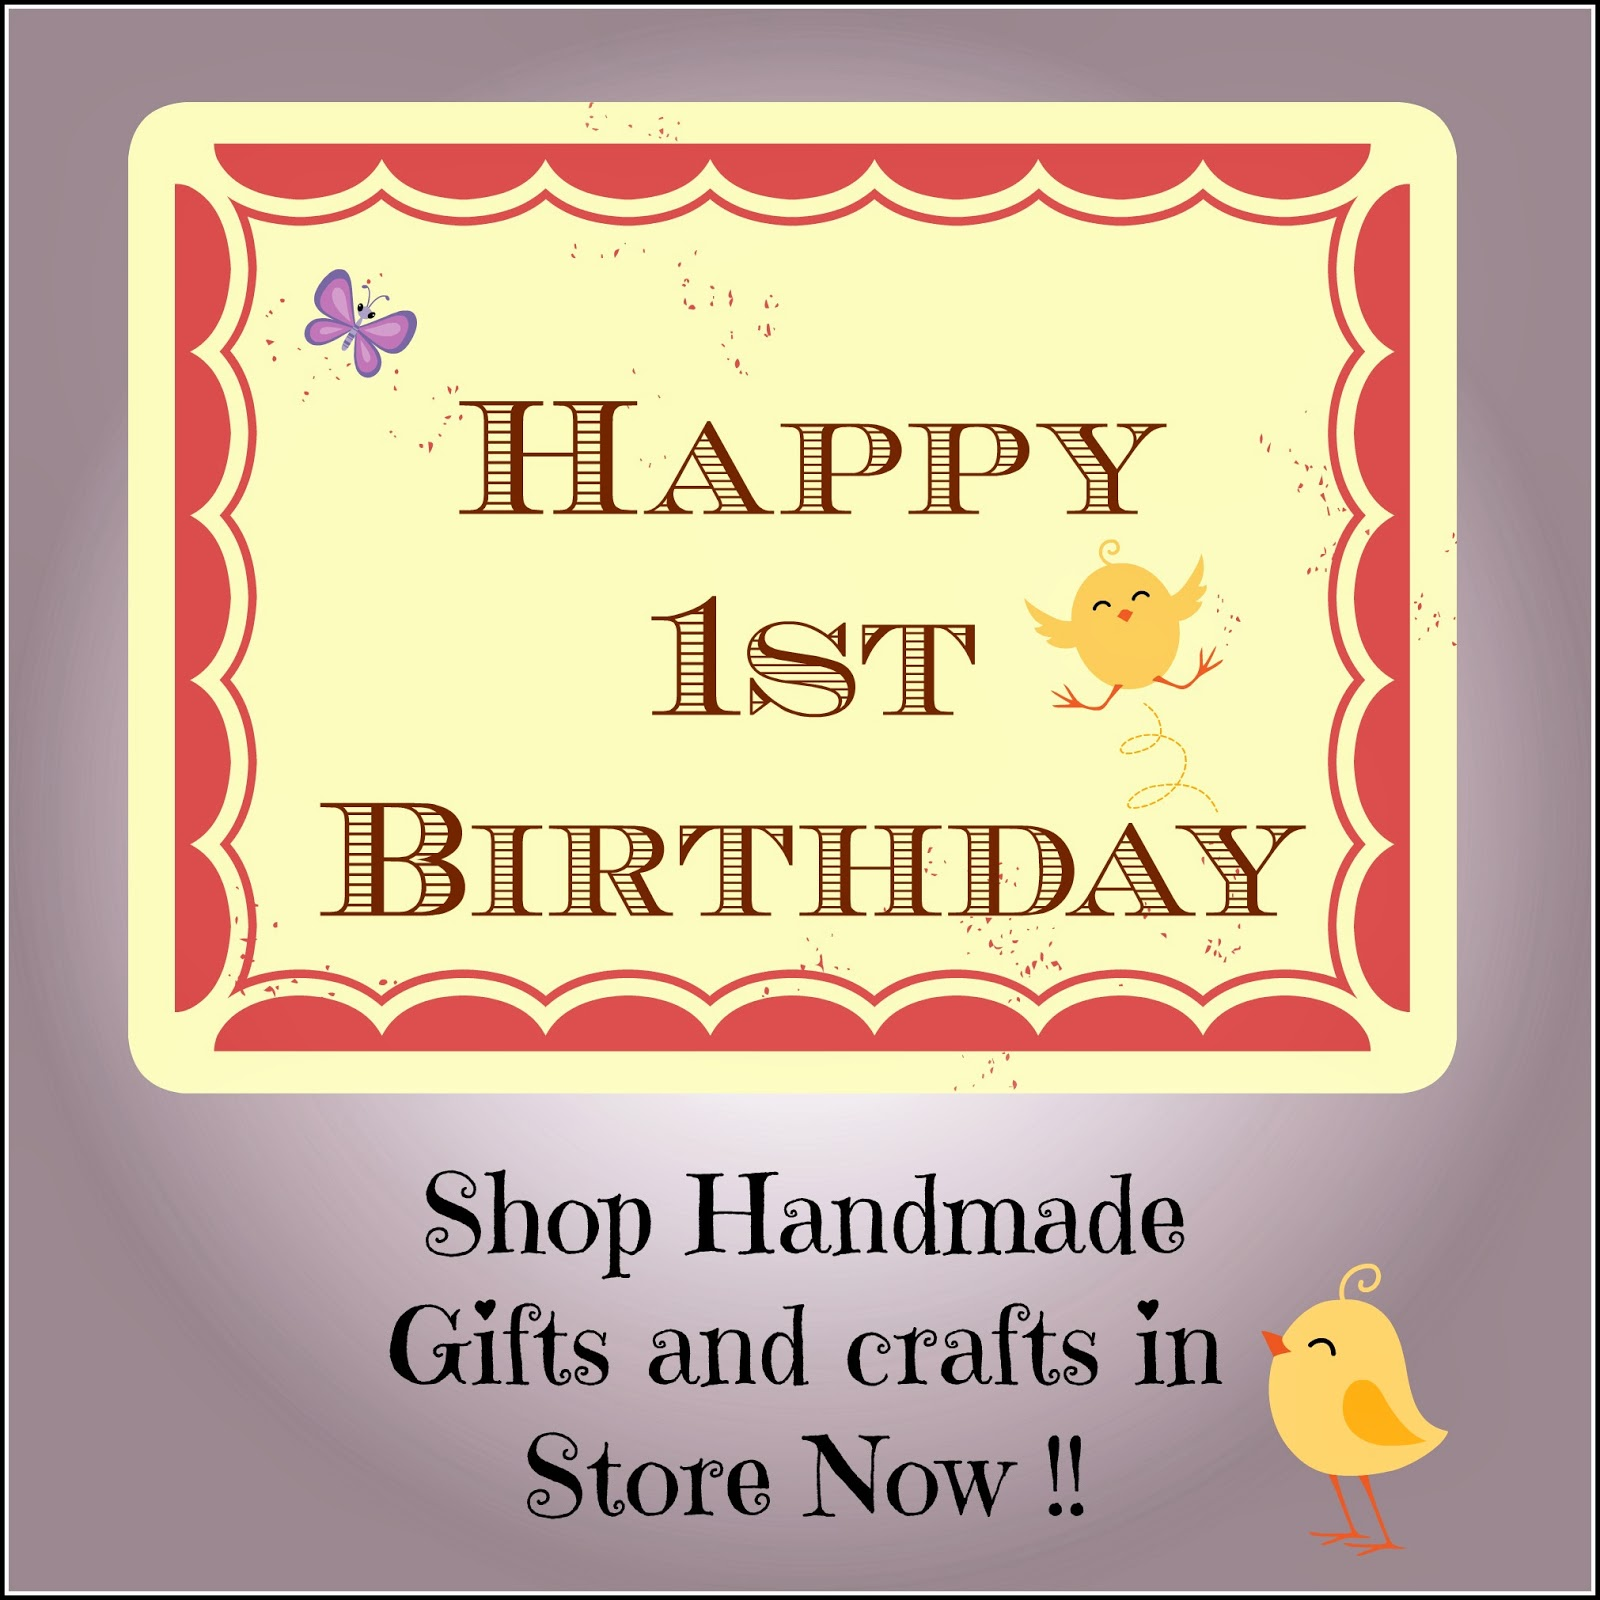 1st Birthday Special Announcement Handmade Gifts Section Open